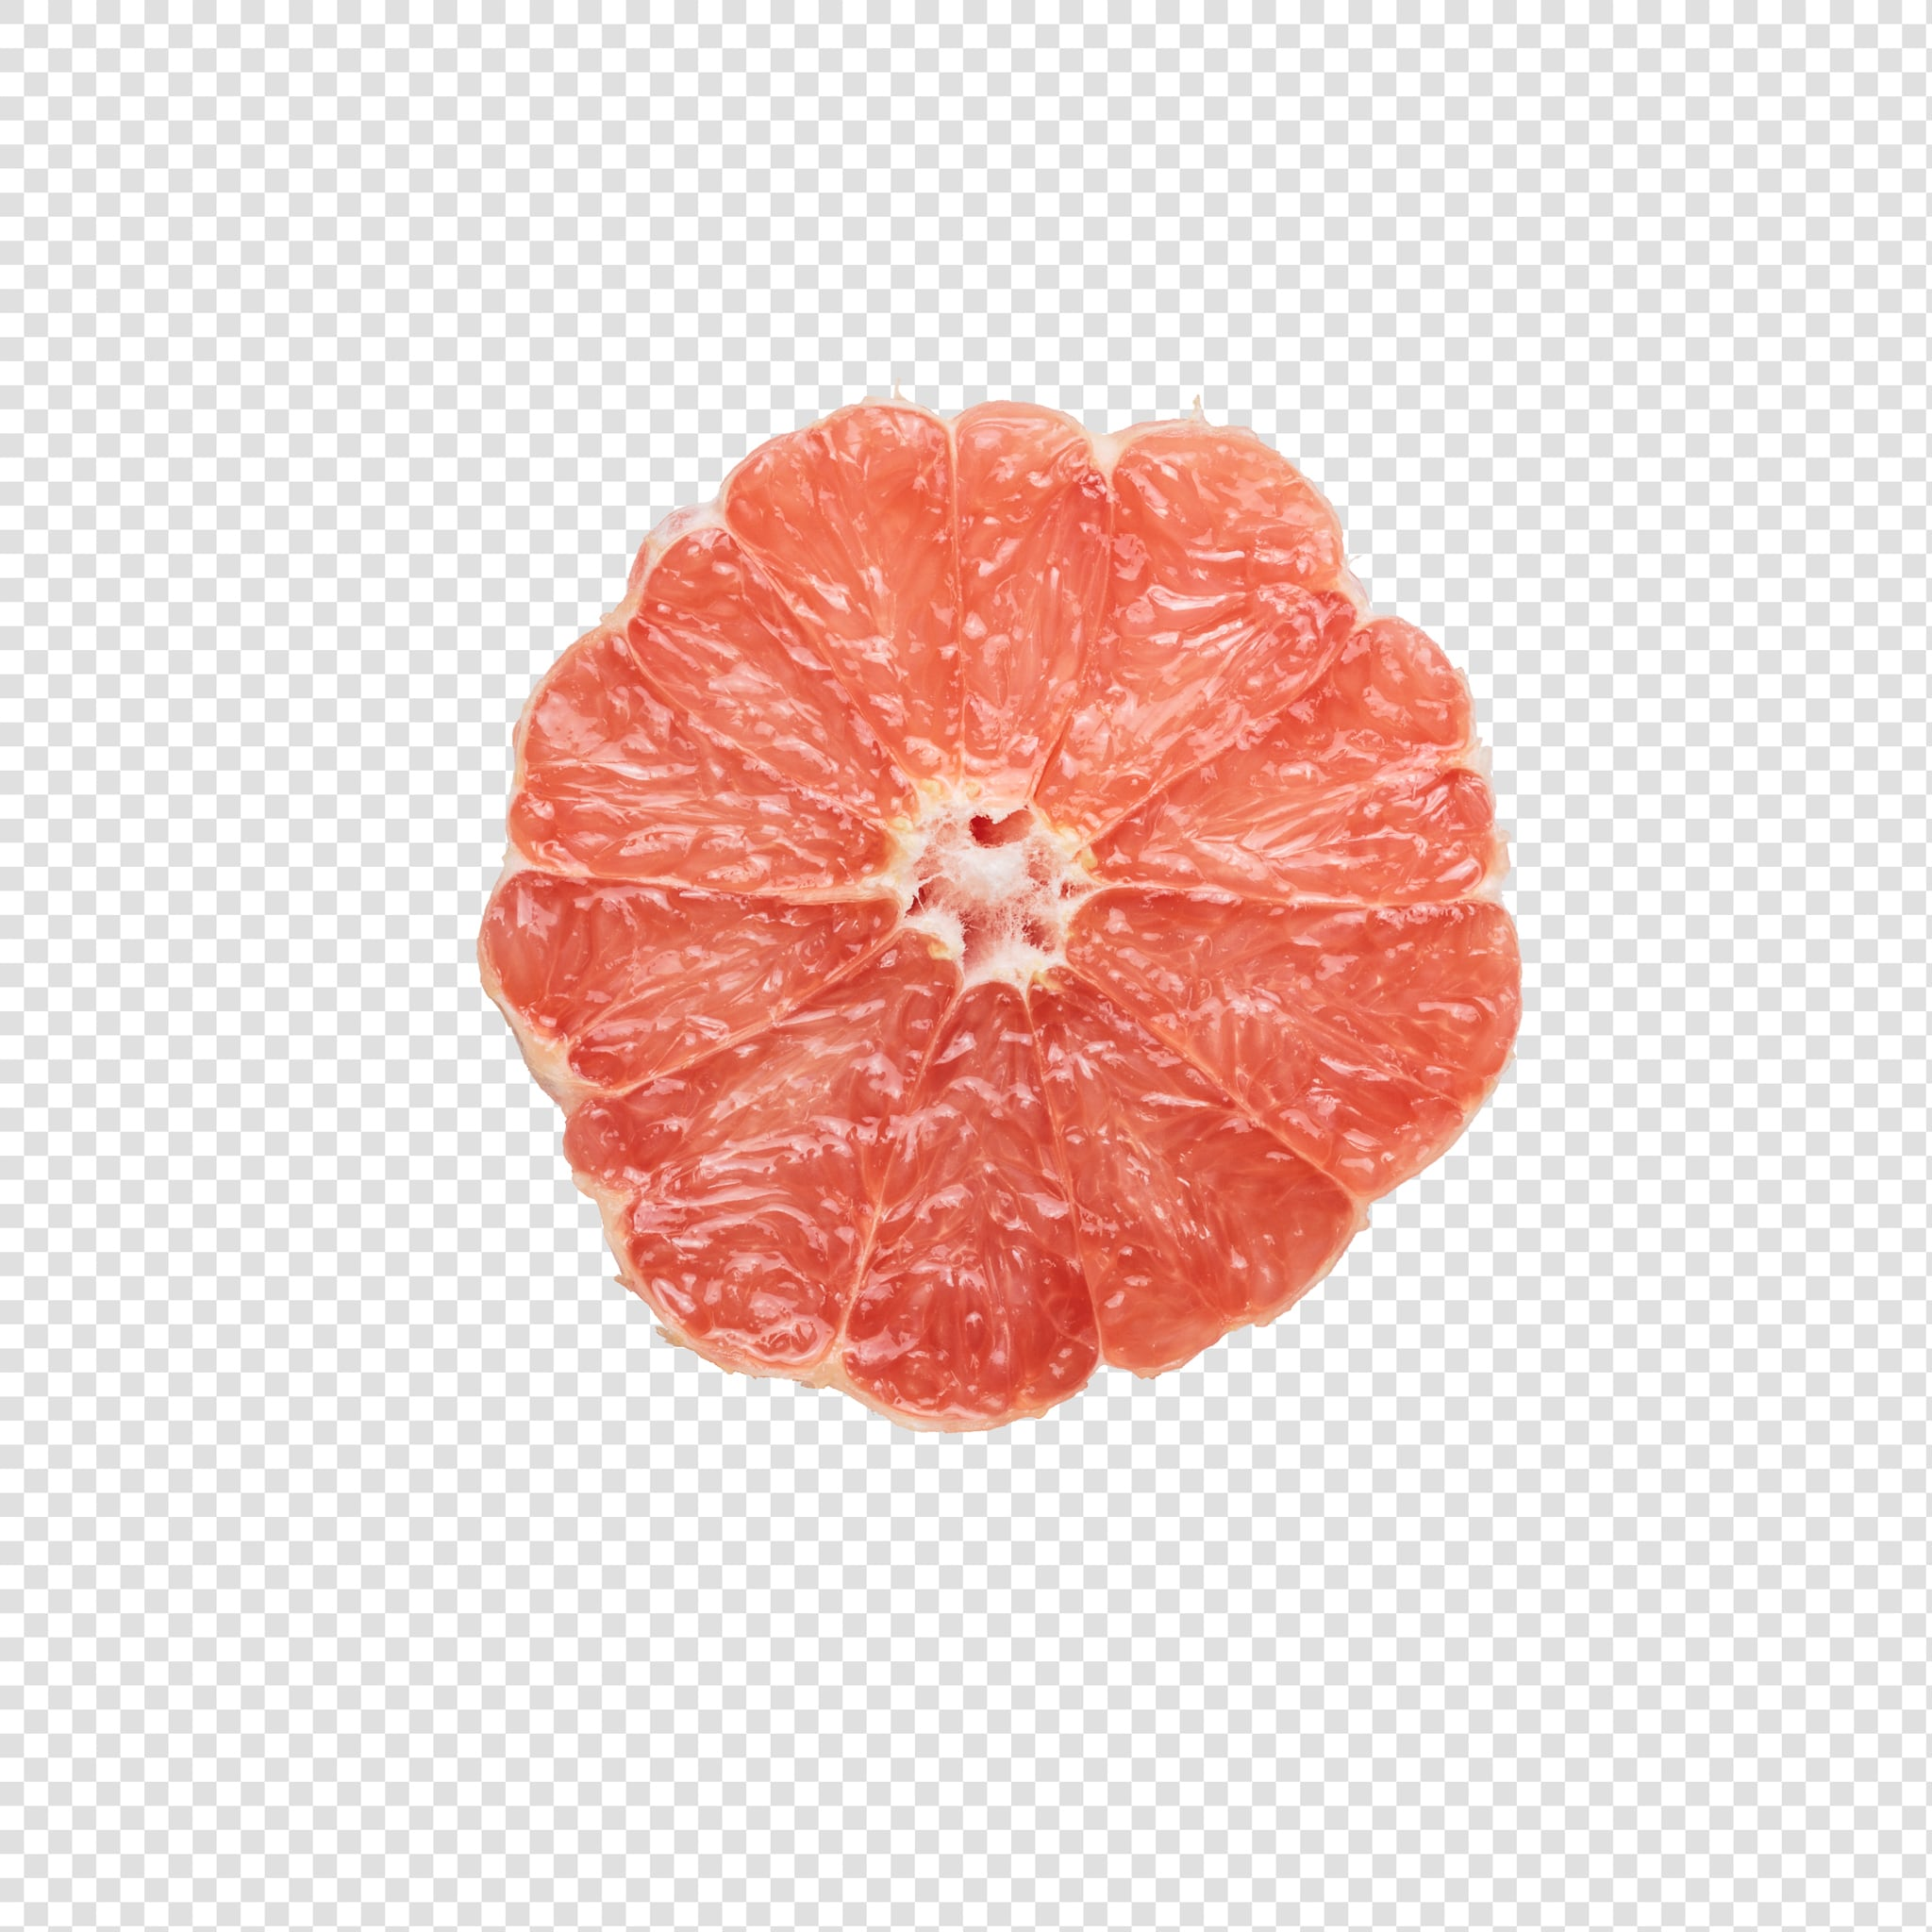 Grapefruit image with transparent background